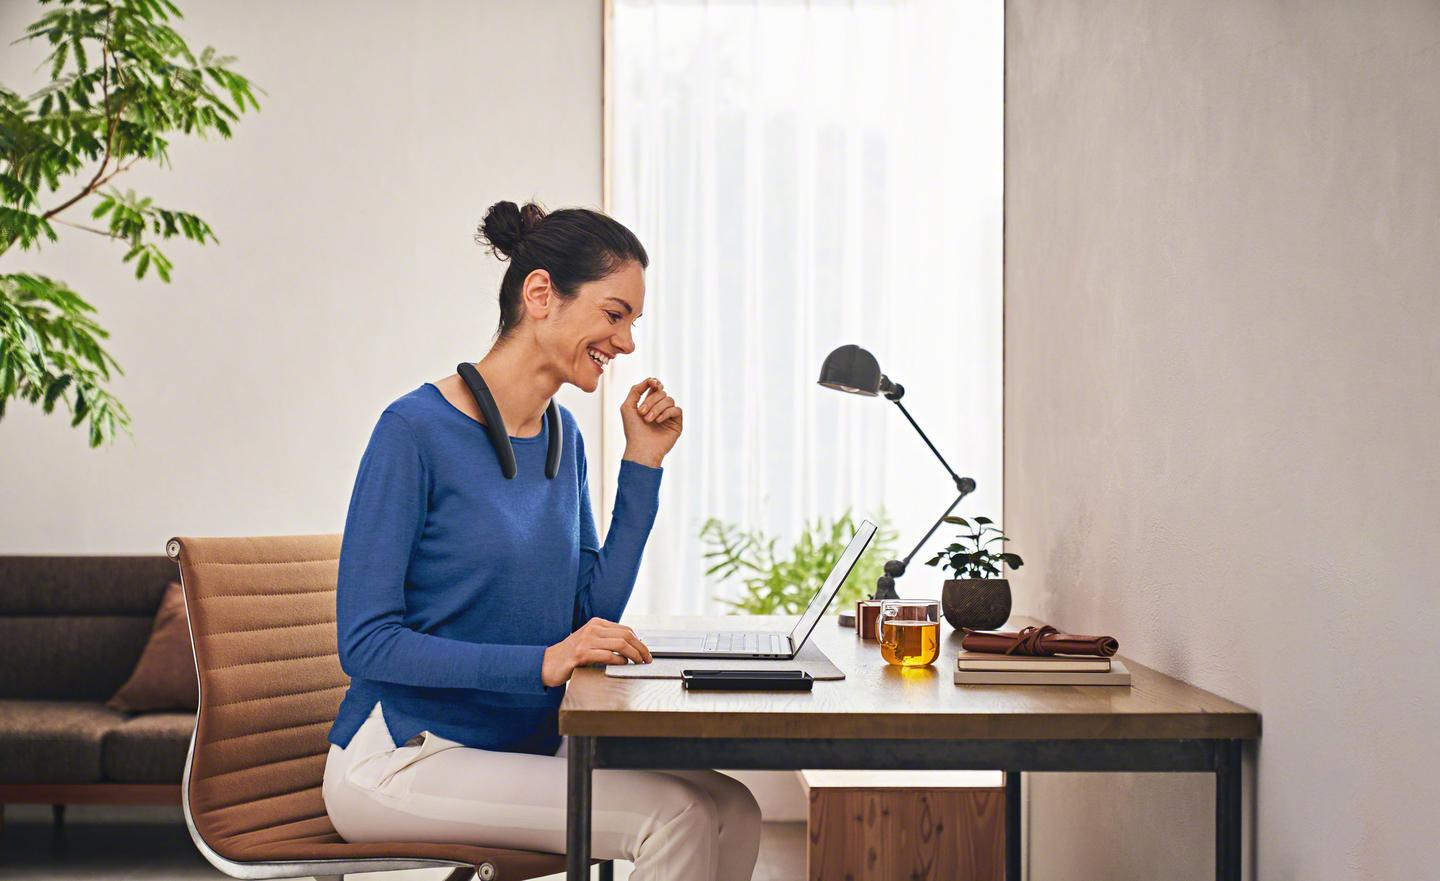 The adjustable neckband features two upfiring speakers for the promise of satisfying, open sound, and beamforming microphones that focus on a wearer's voice during calls